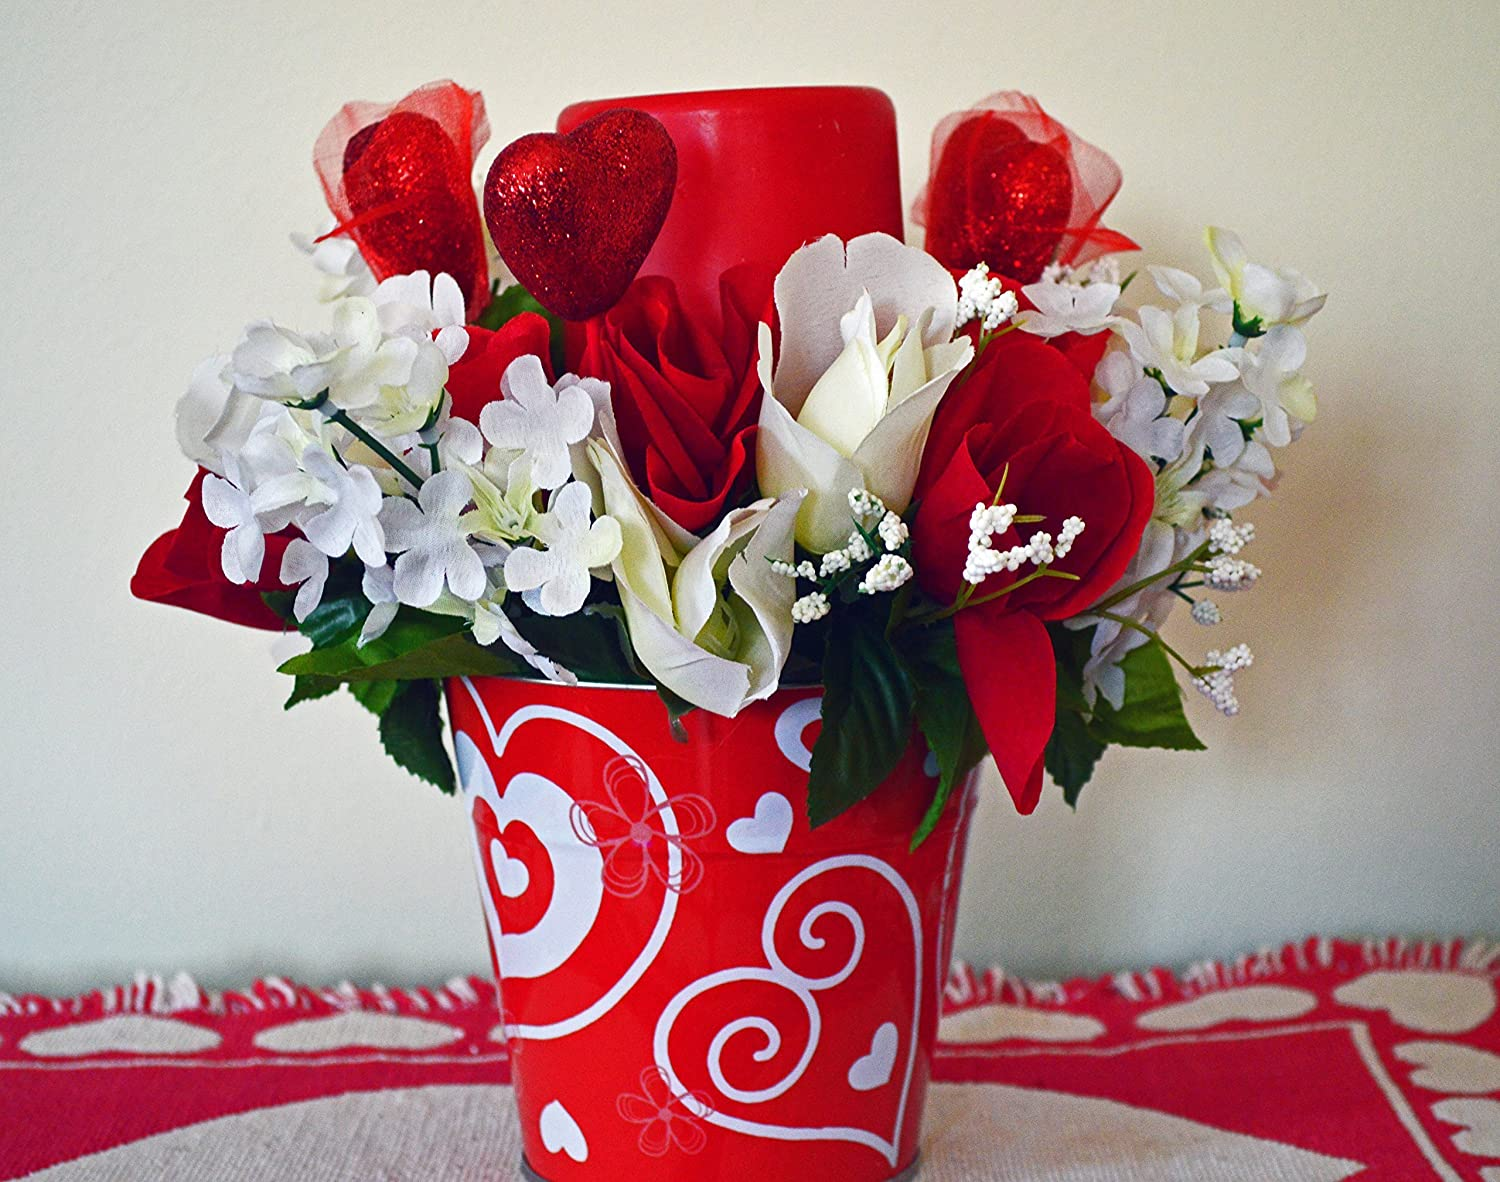 Amazon Com Valentine Day Decor Floral Arrangement Led Candle Table Decoration Valentines Gift Roses Valentine Pail Red Pail Ready To Ship Handmade